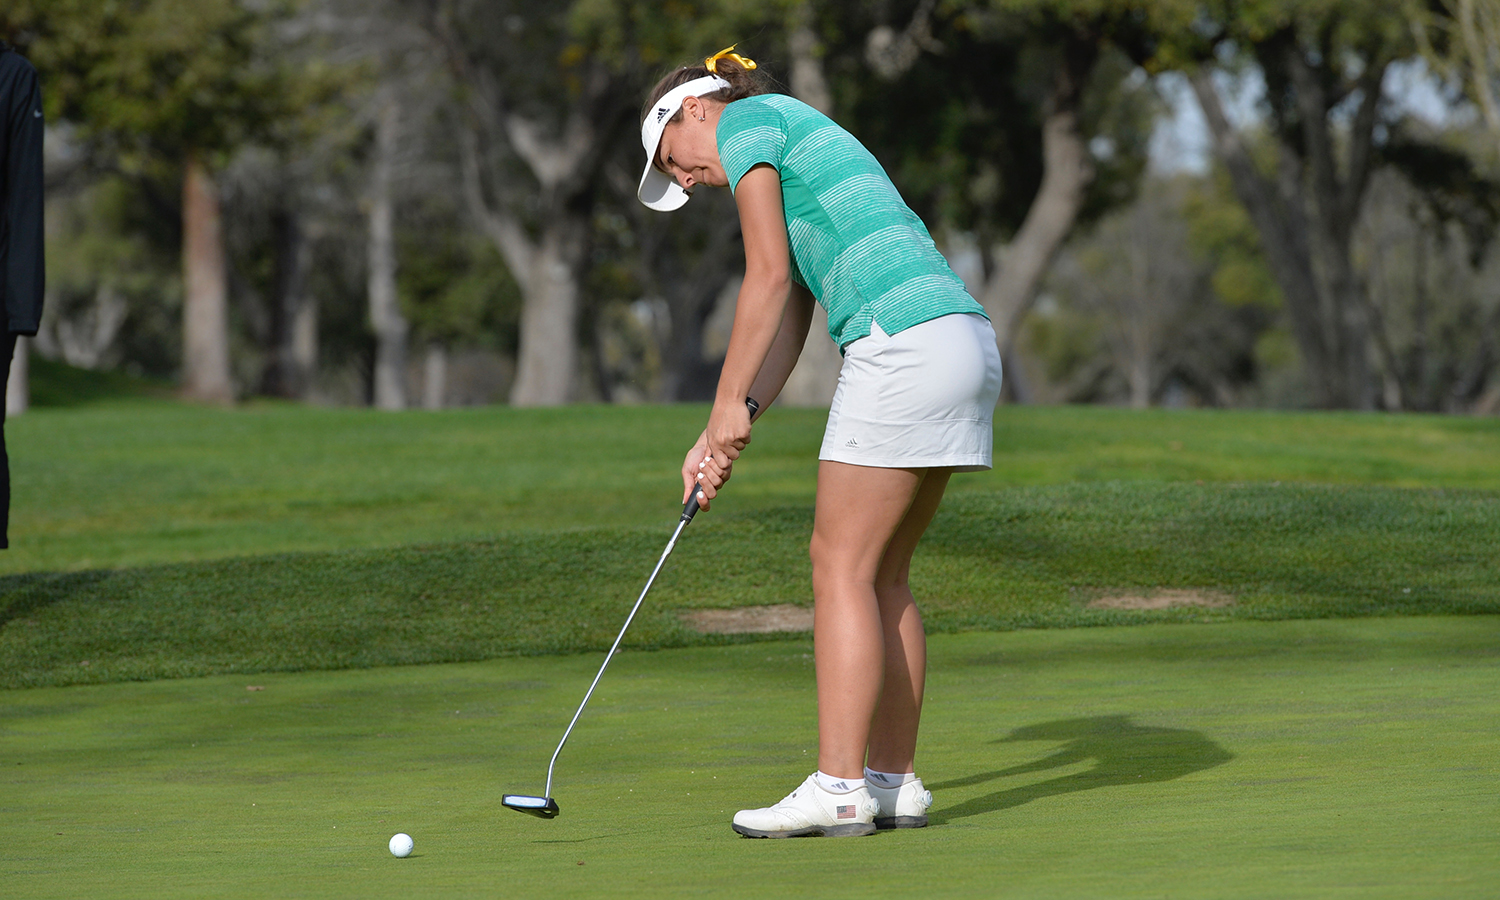 STRONG START, ROUGH FINISH LEAVES WOMEN'S GOLF IN THIRD PLACE AFTER FIRST ROUND OF BIG SKY CHAMPIONSHIPS